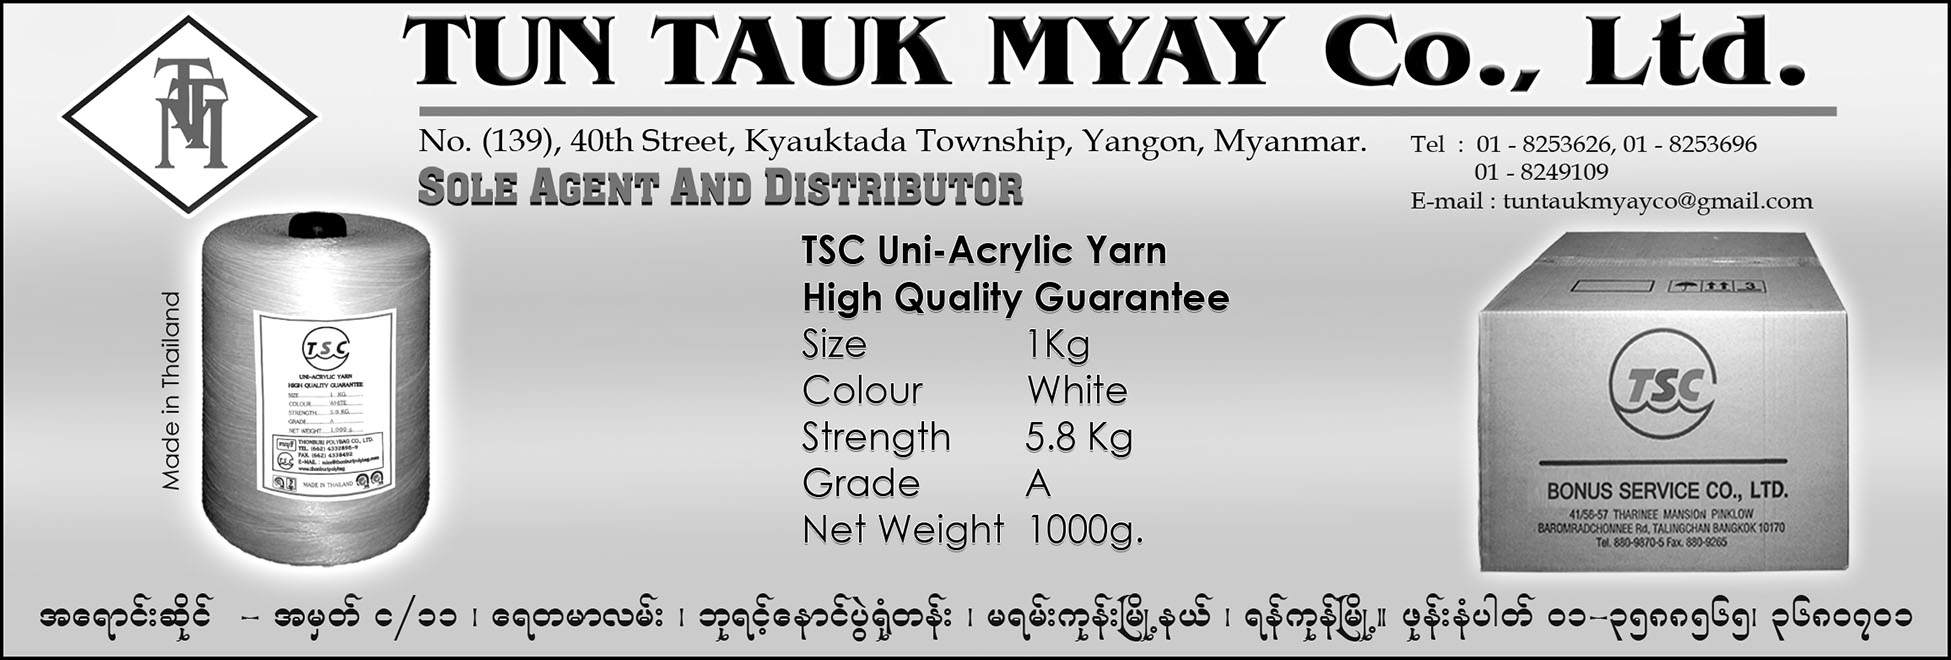 Tun Tauk Myay Co., Ltd.